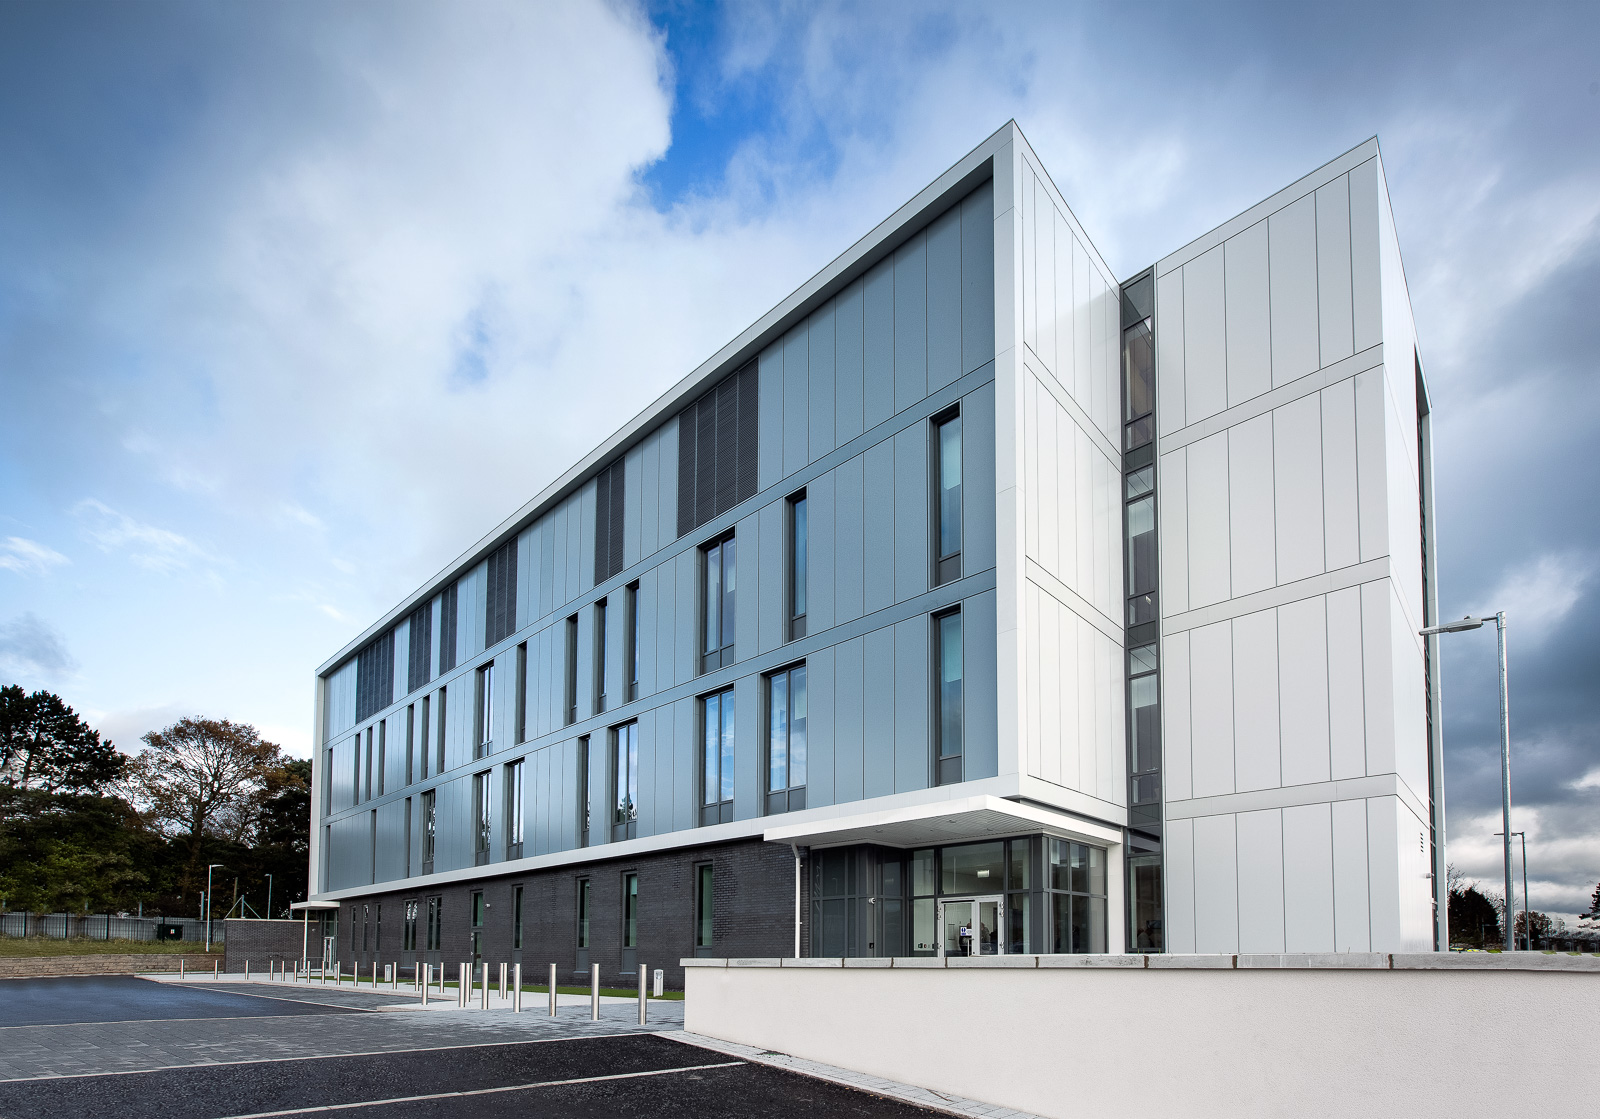 Image of Forensic Science NI laboratory building